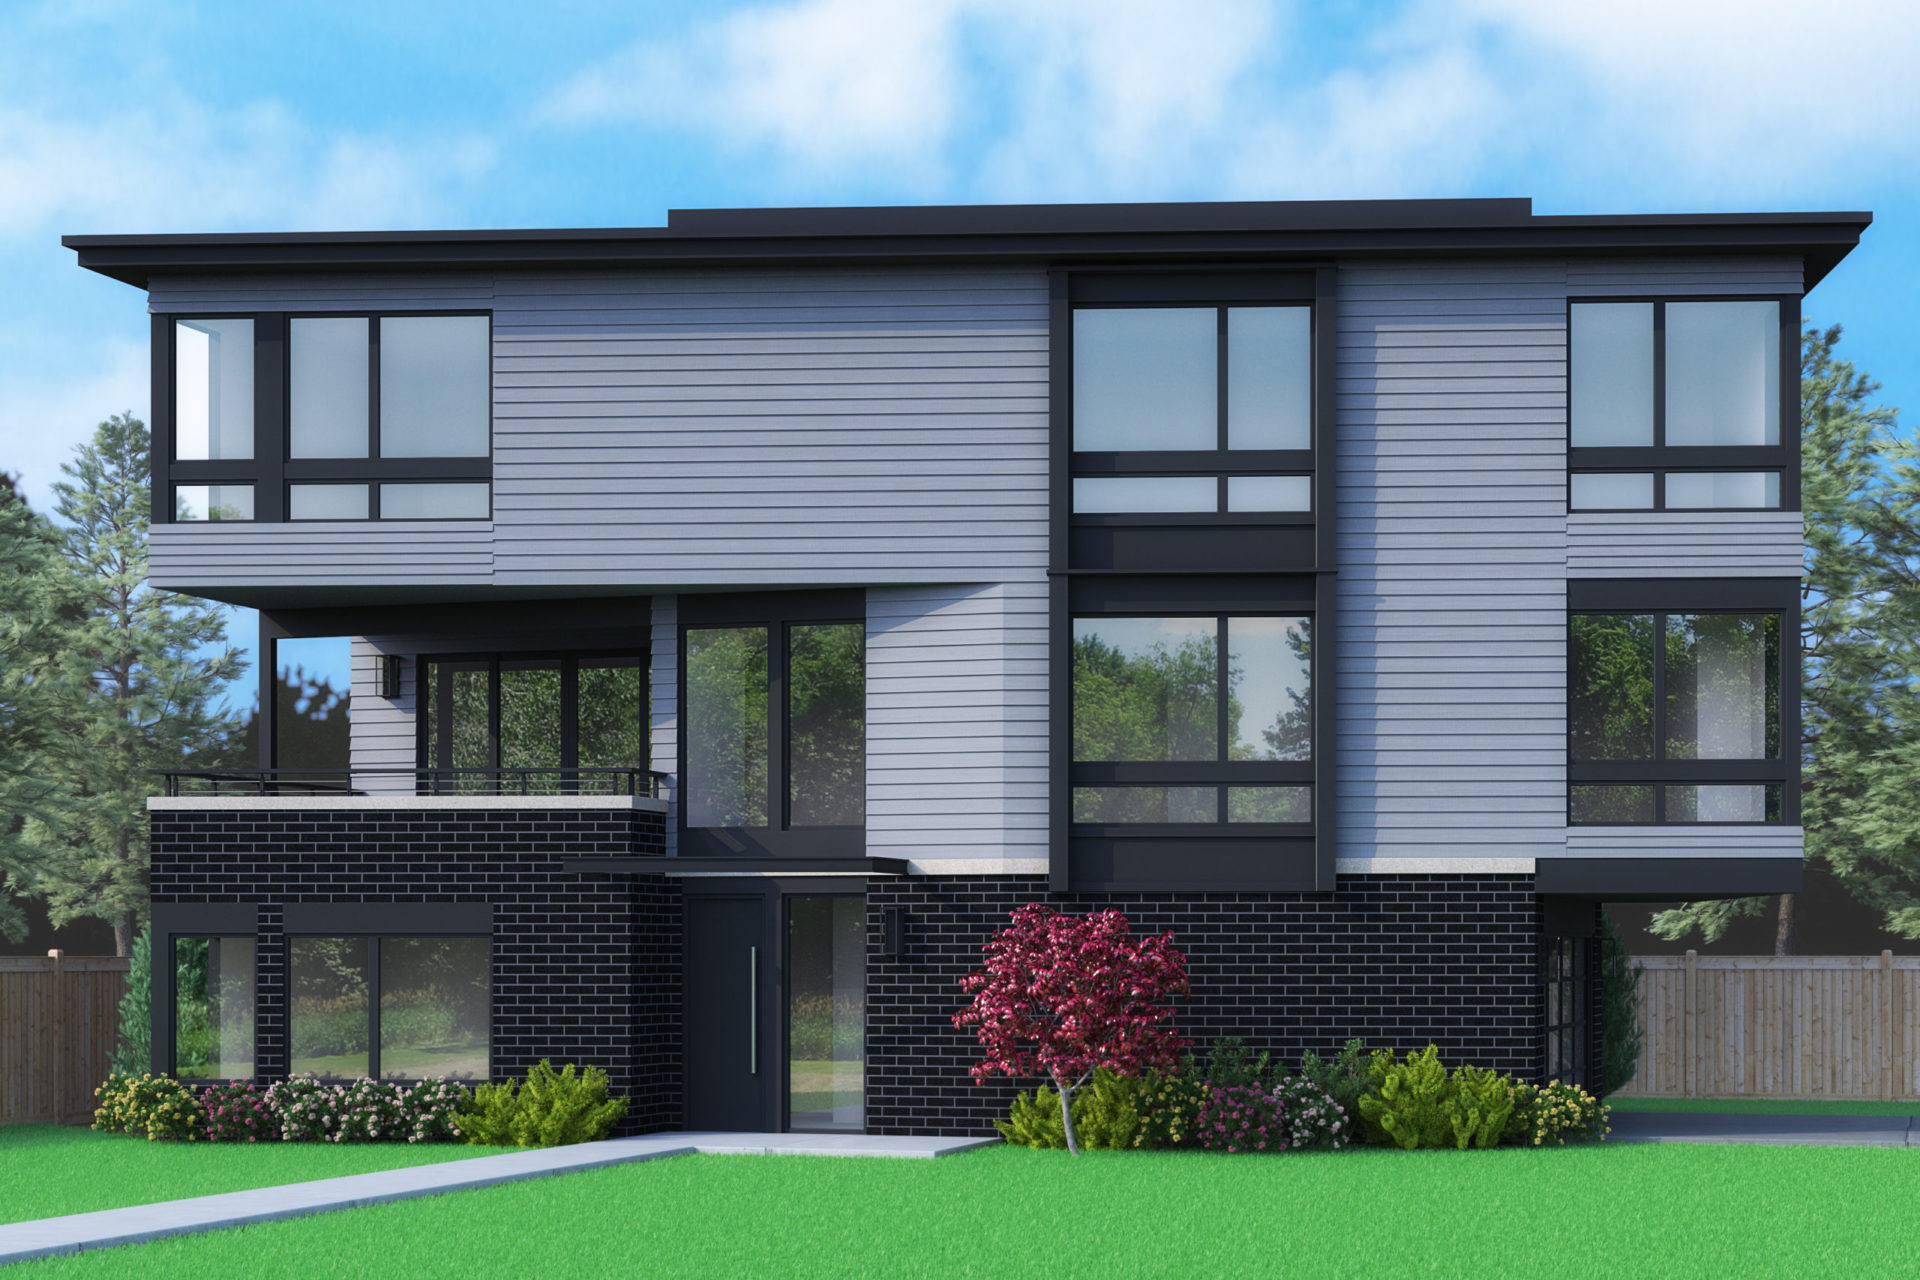 View our new luxury home construction on 764 State St S, in Kirkland, WA from MN Custom Homes